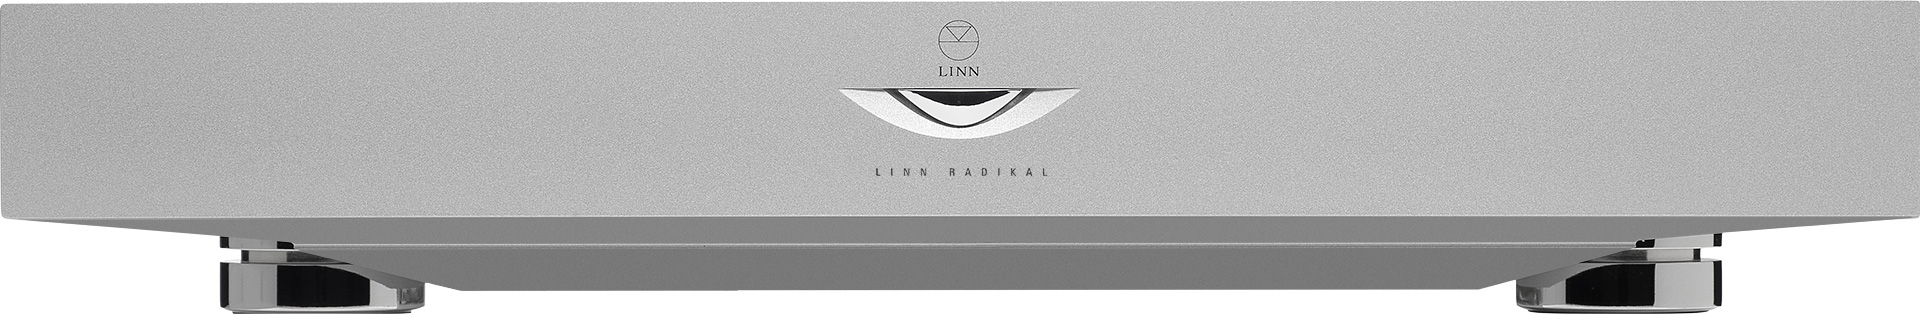 Linn radical power supply